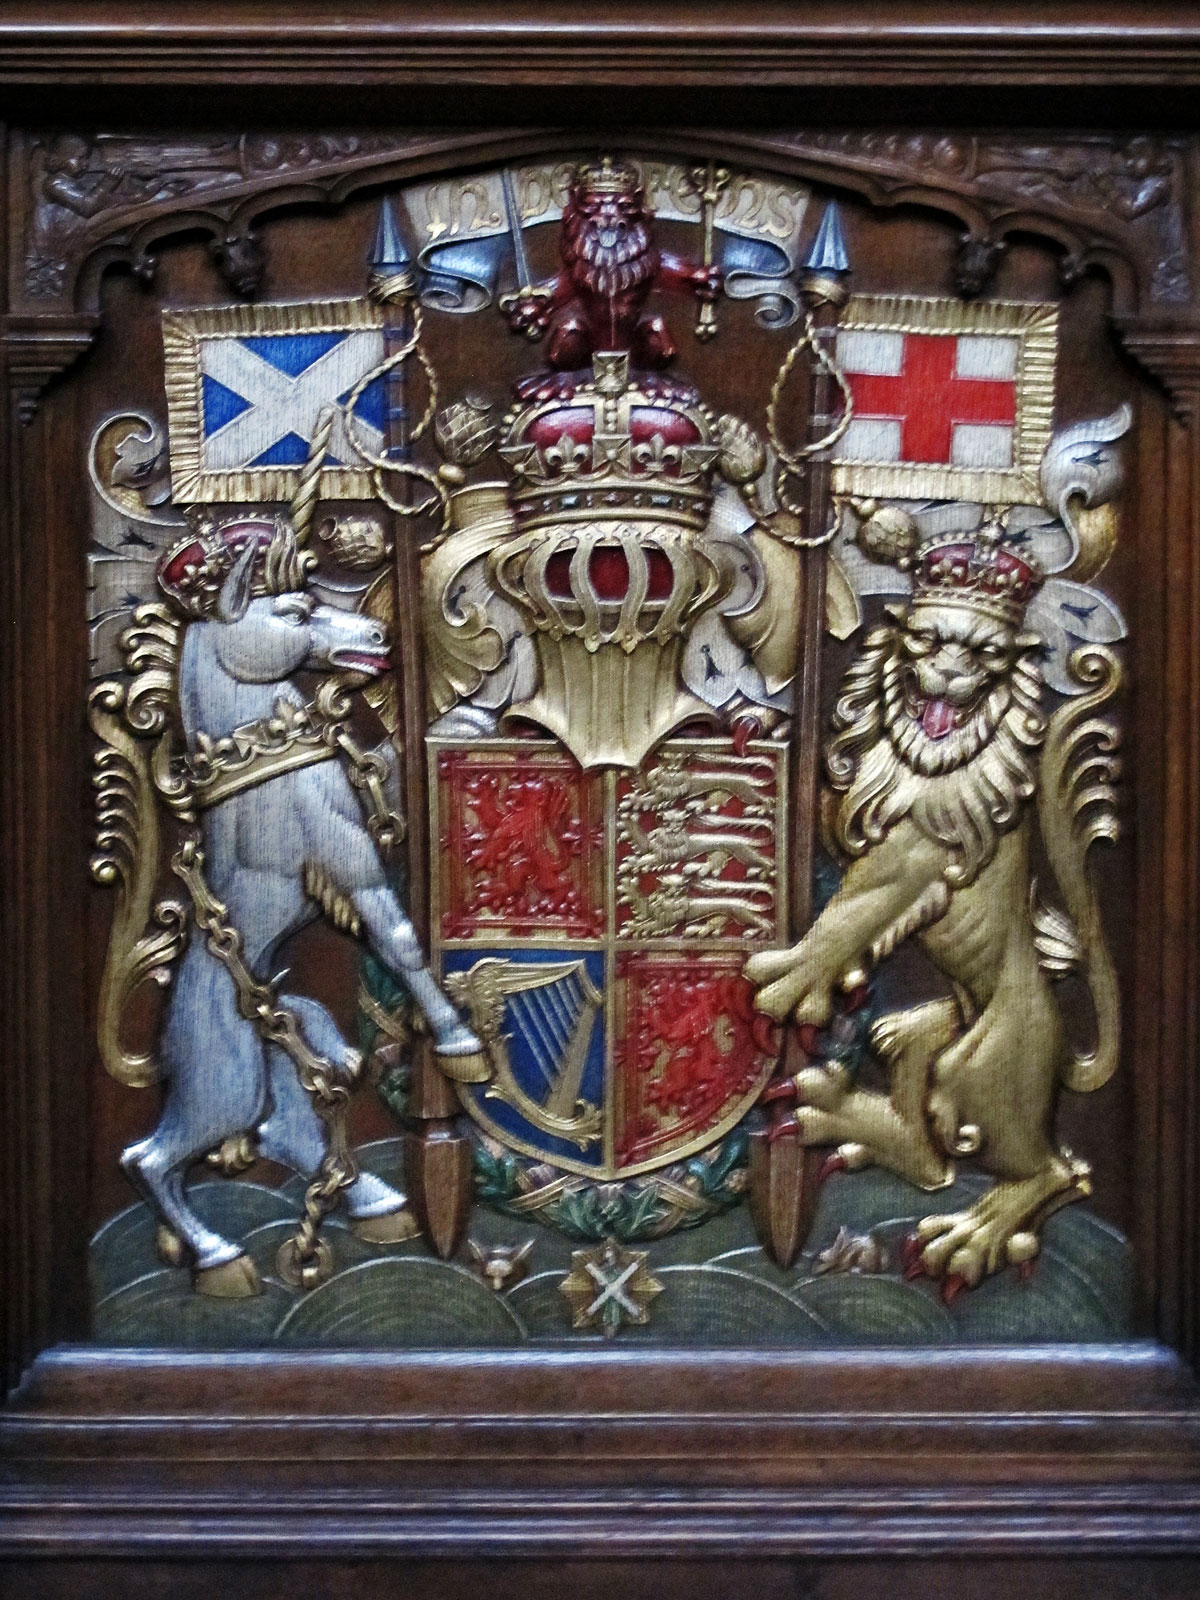 Royal Arms of Scotland on the Sovereign's Stall